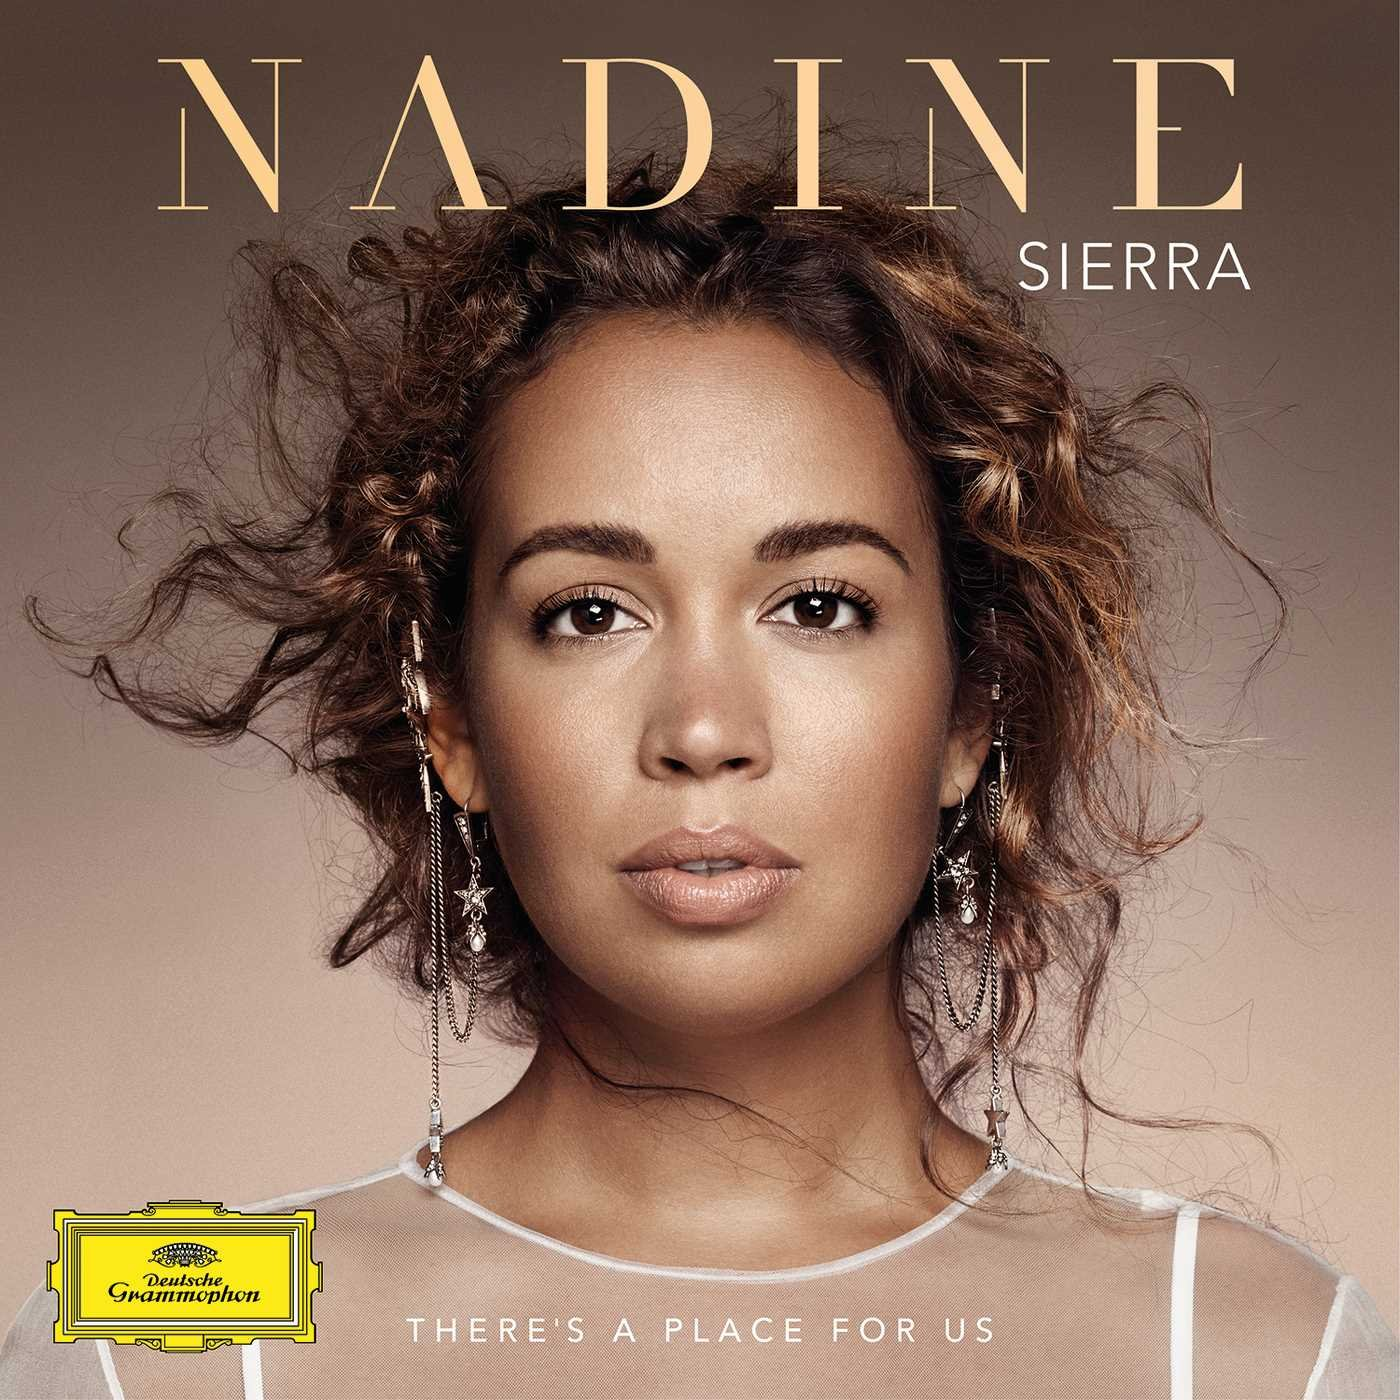 CD : Nadine Sierra - There's A Place For Us